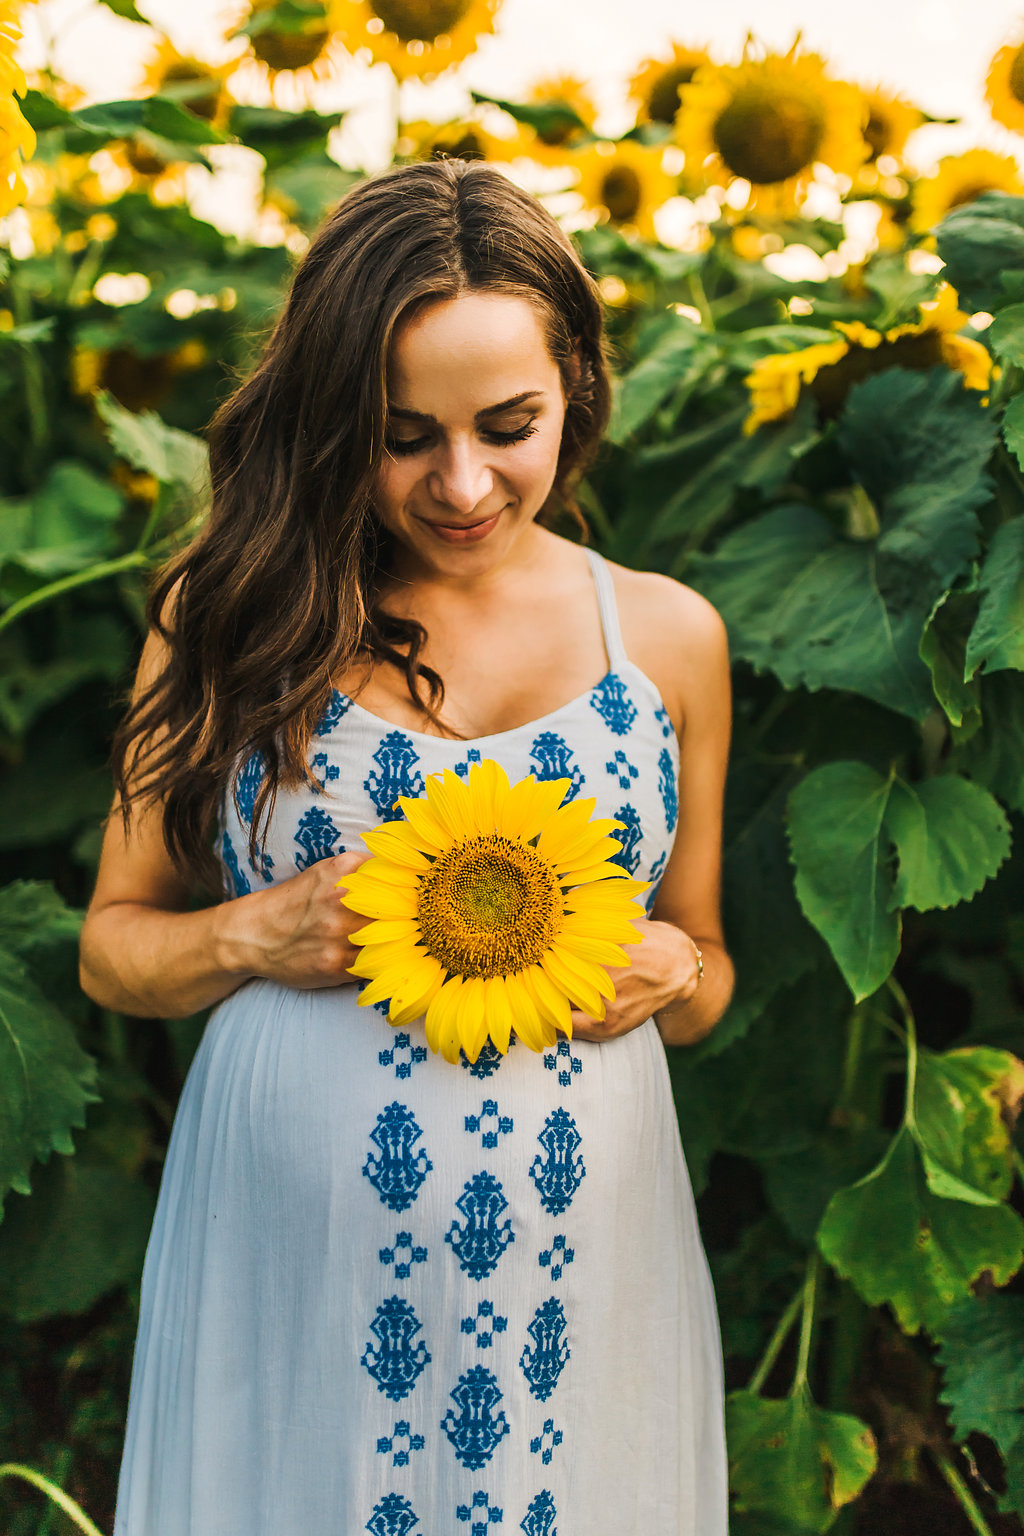 Sunflower-Maternity-Nashville-Tennessee-Field-Batey-Farms-7